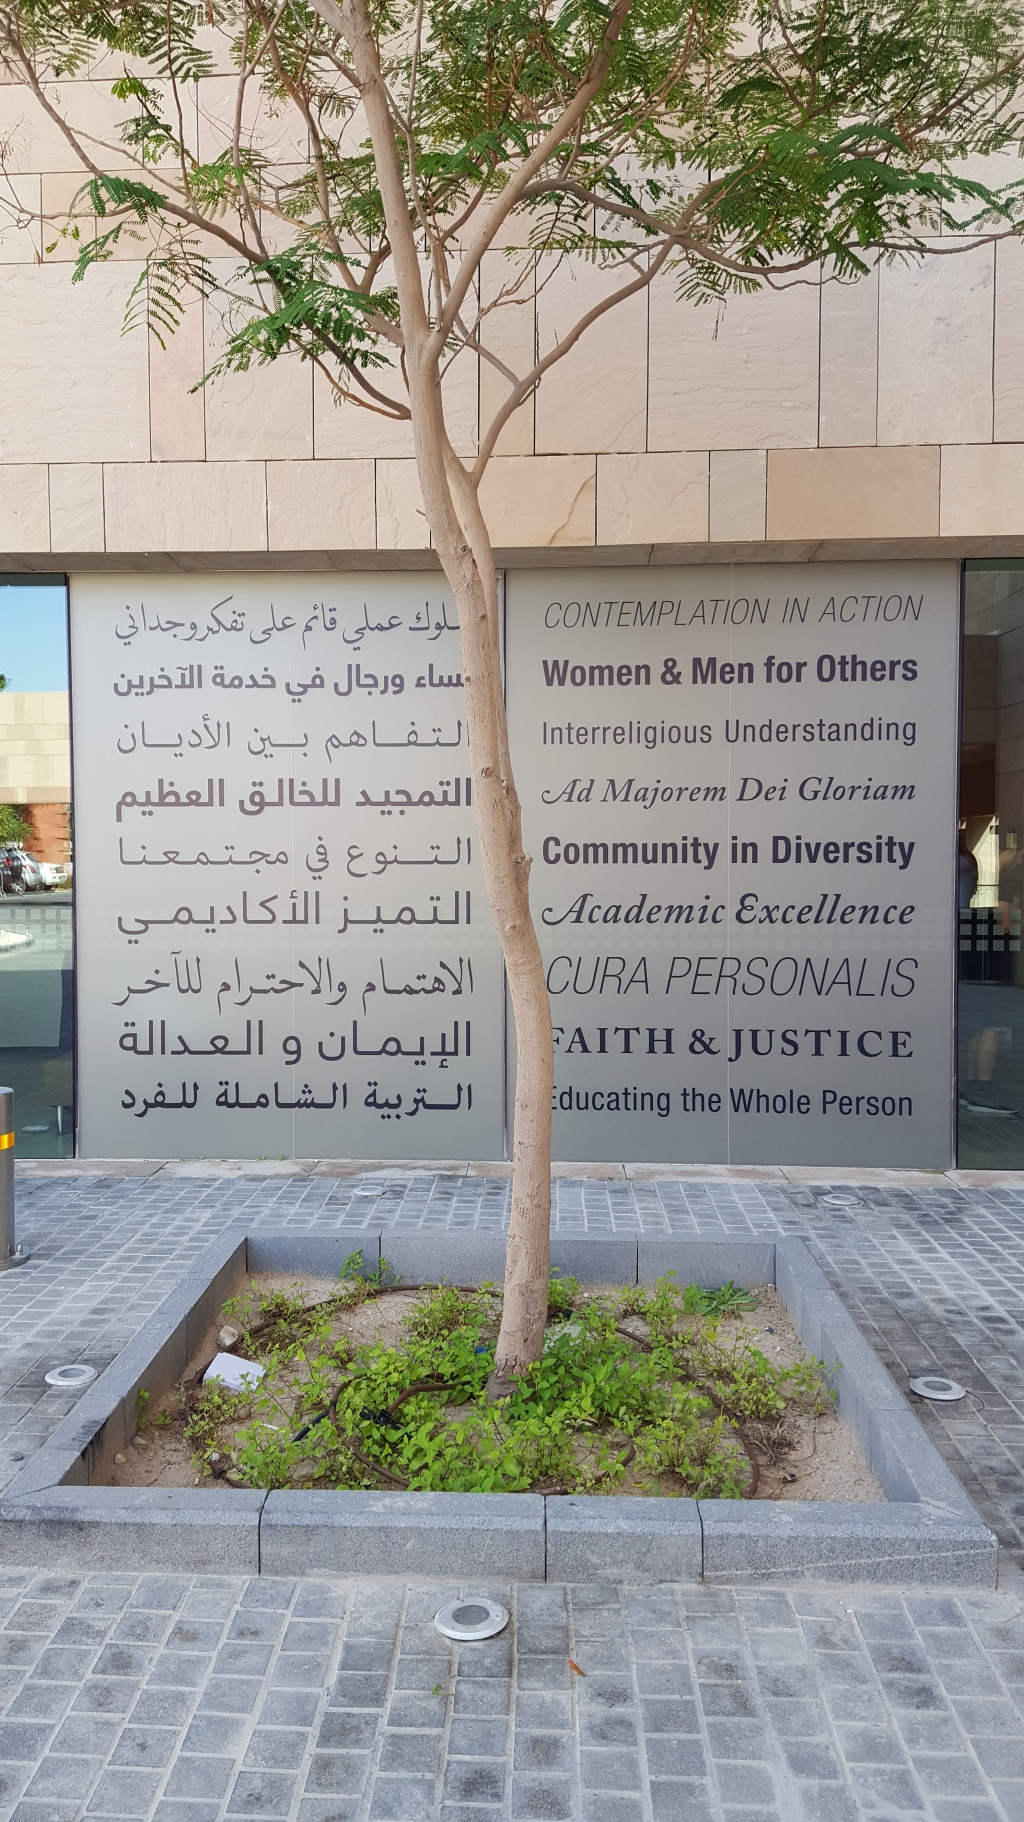 principles are part of the literal fabric of Georgetown University in Qatar